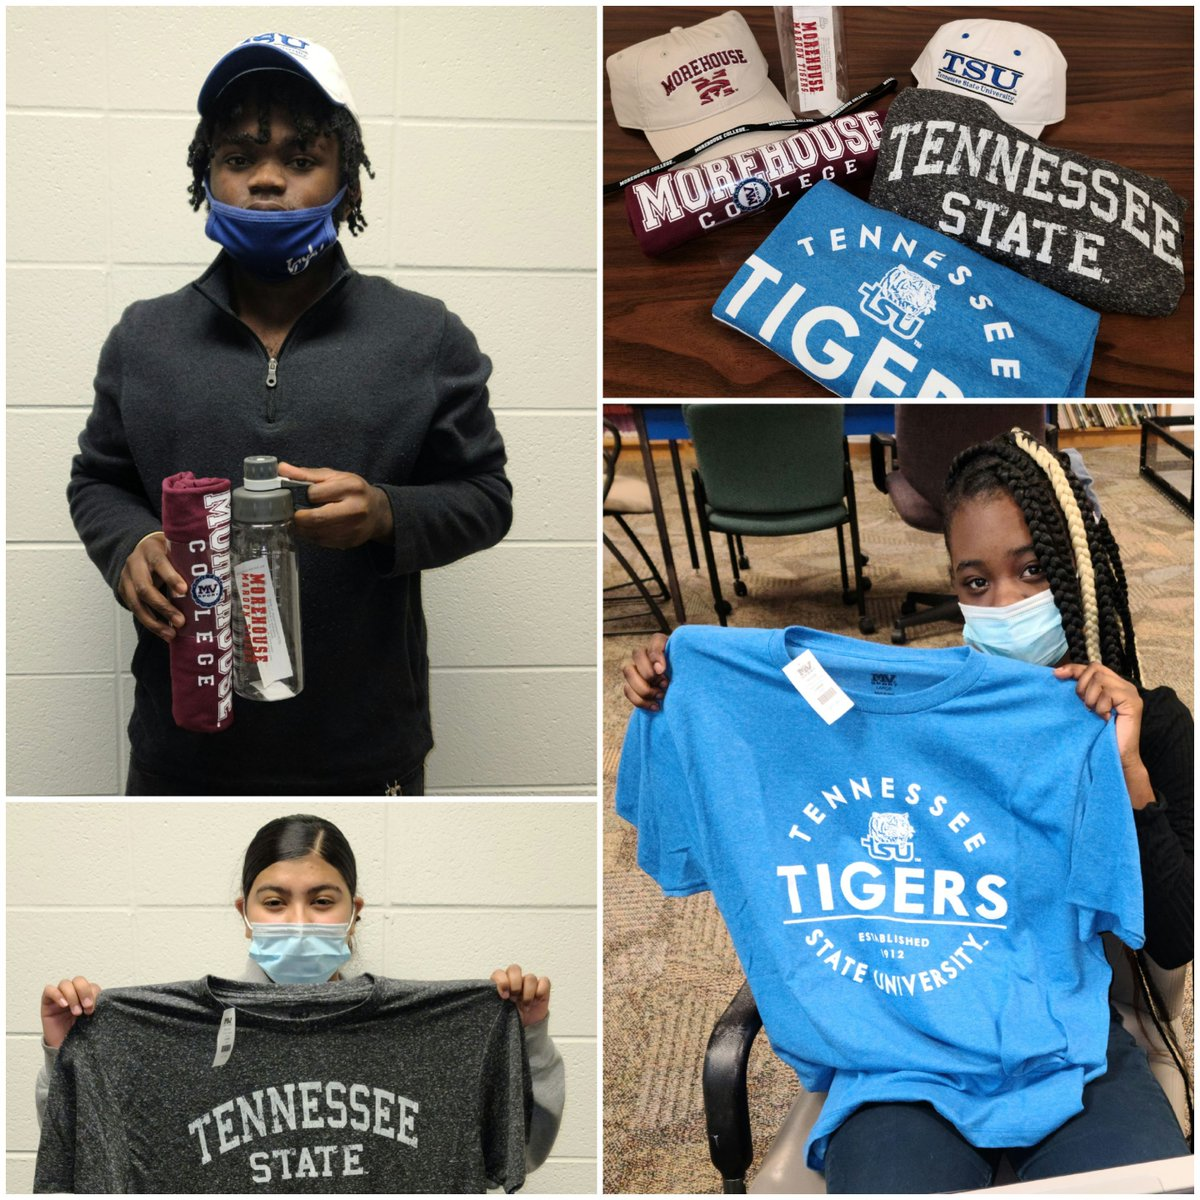 Our recent virtual college tour was a huge success! Thank you, @TSUedu and @Morehouse , for the amazing merch! The students loved them! https://t.co/RS9e0LhMf1